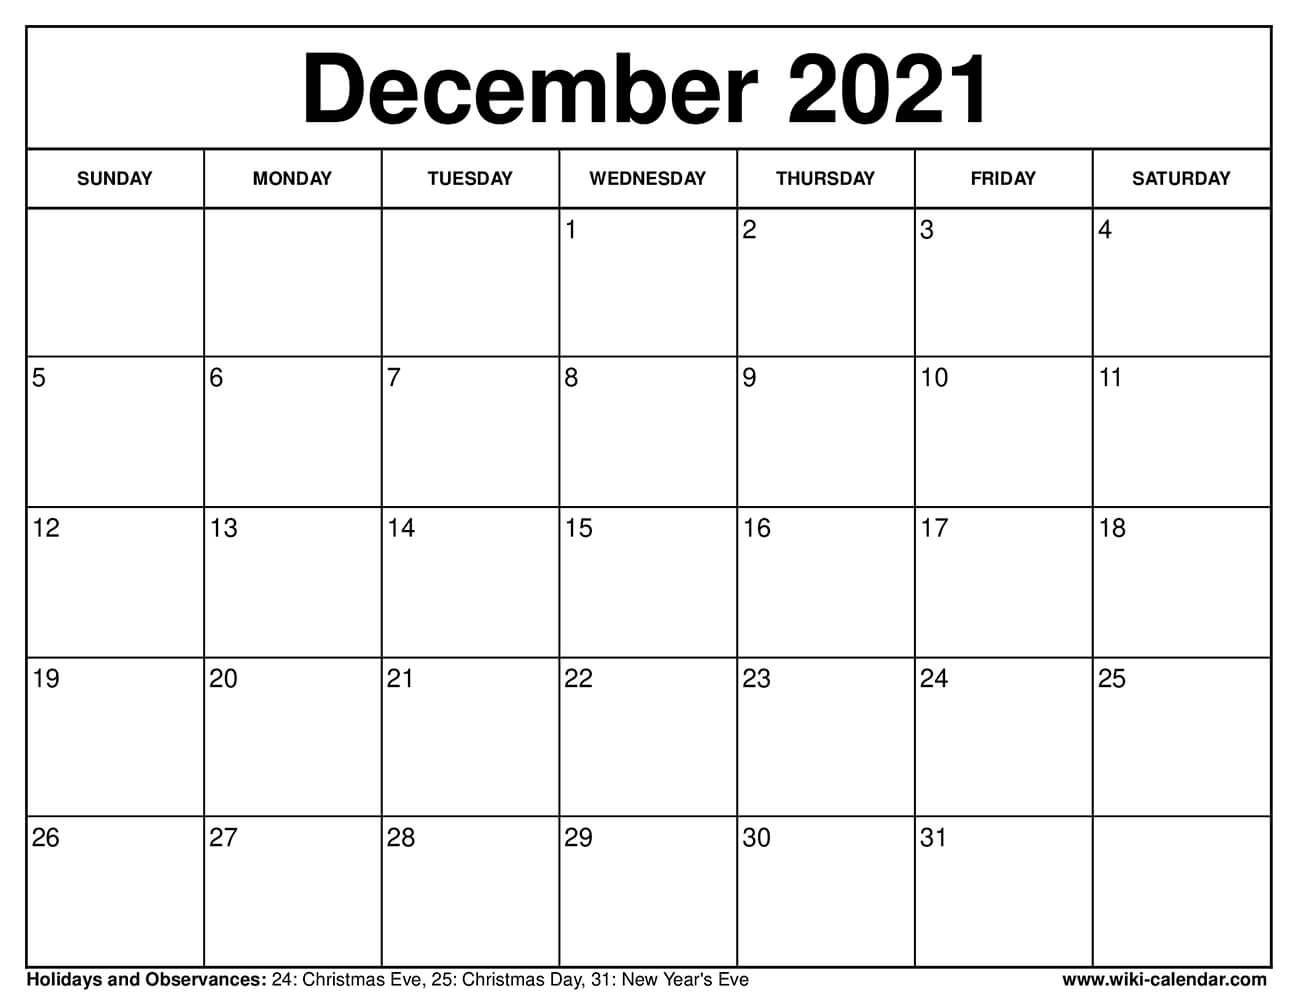 December 2021 Calendar Printable with Holidays